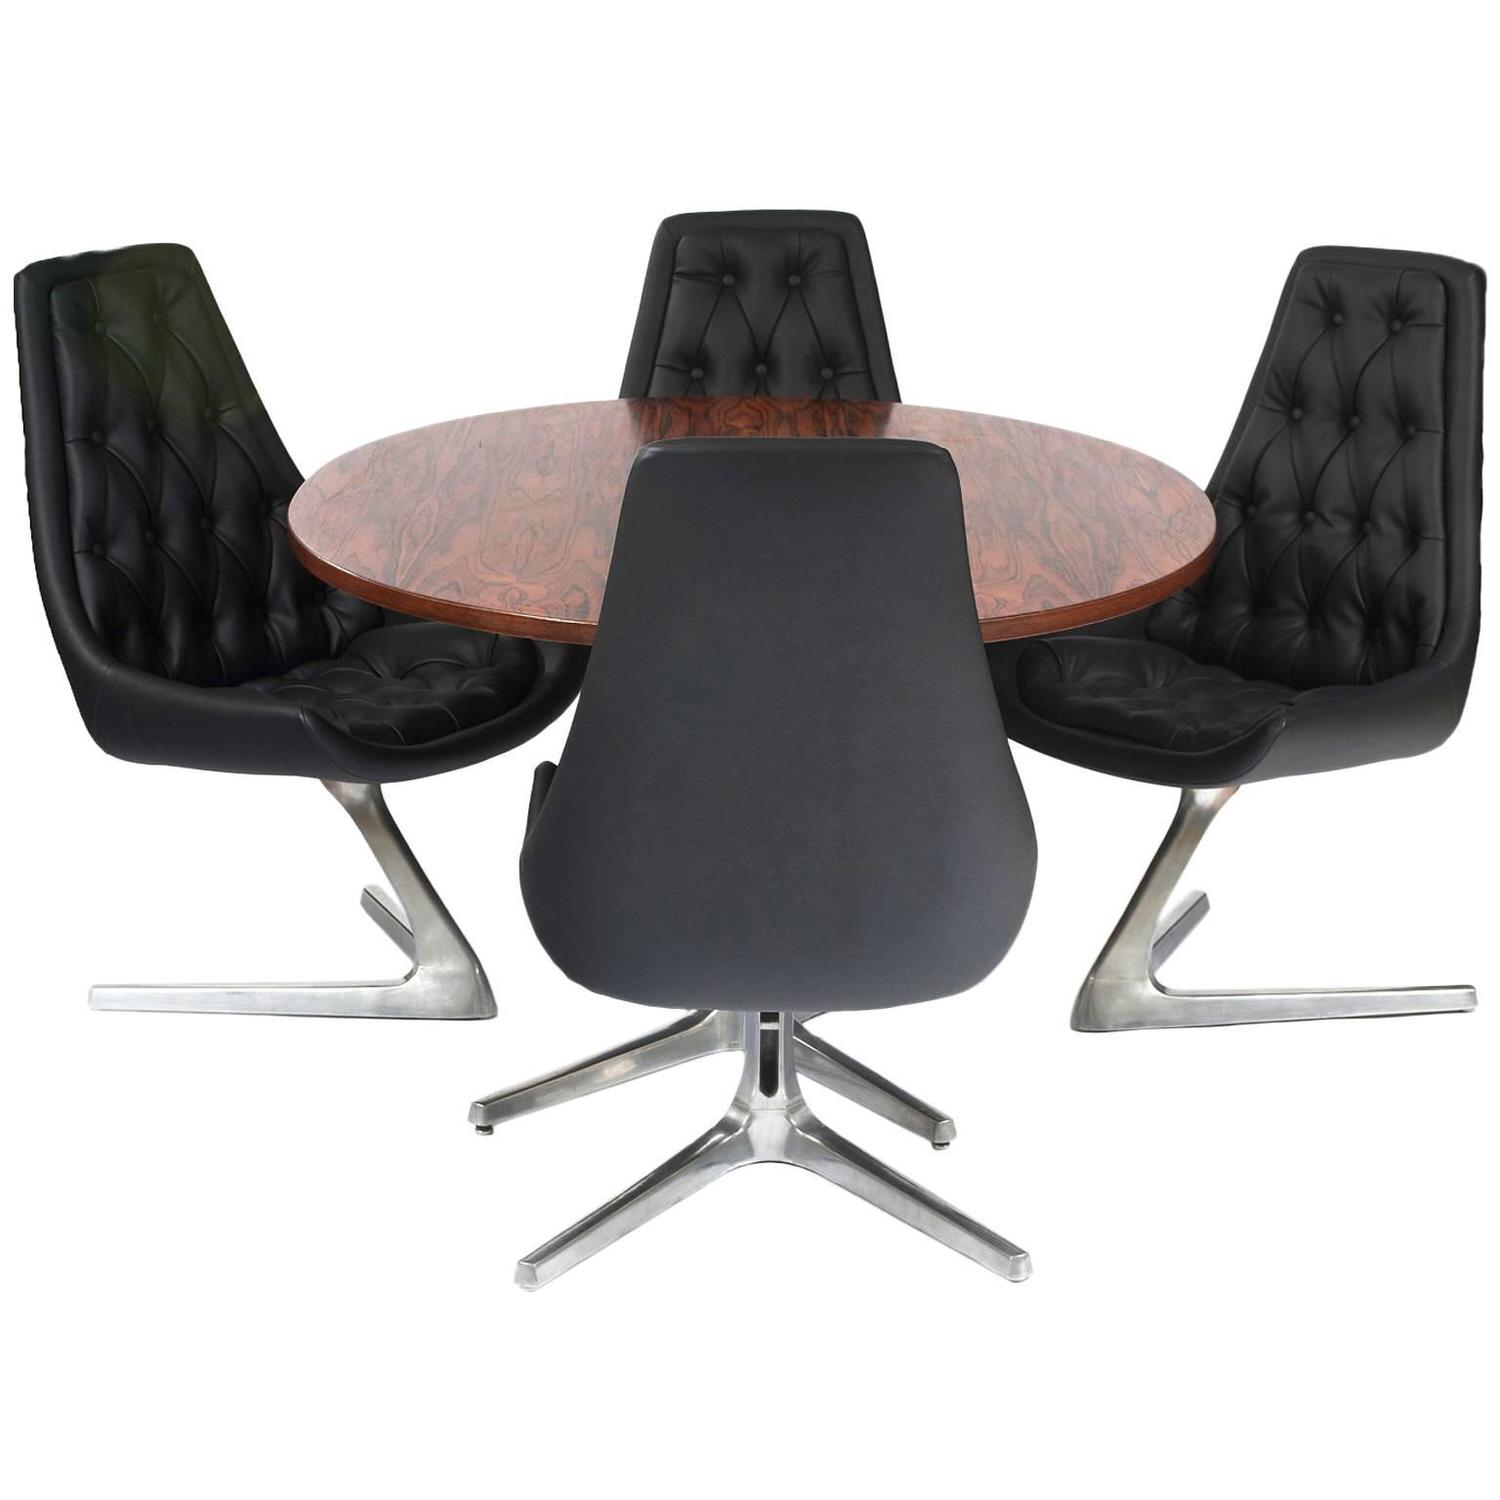 Chromcraft Chairs Chromcraft Sculpta Dining Table And Chairs For Sale At 1stdibs